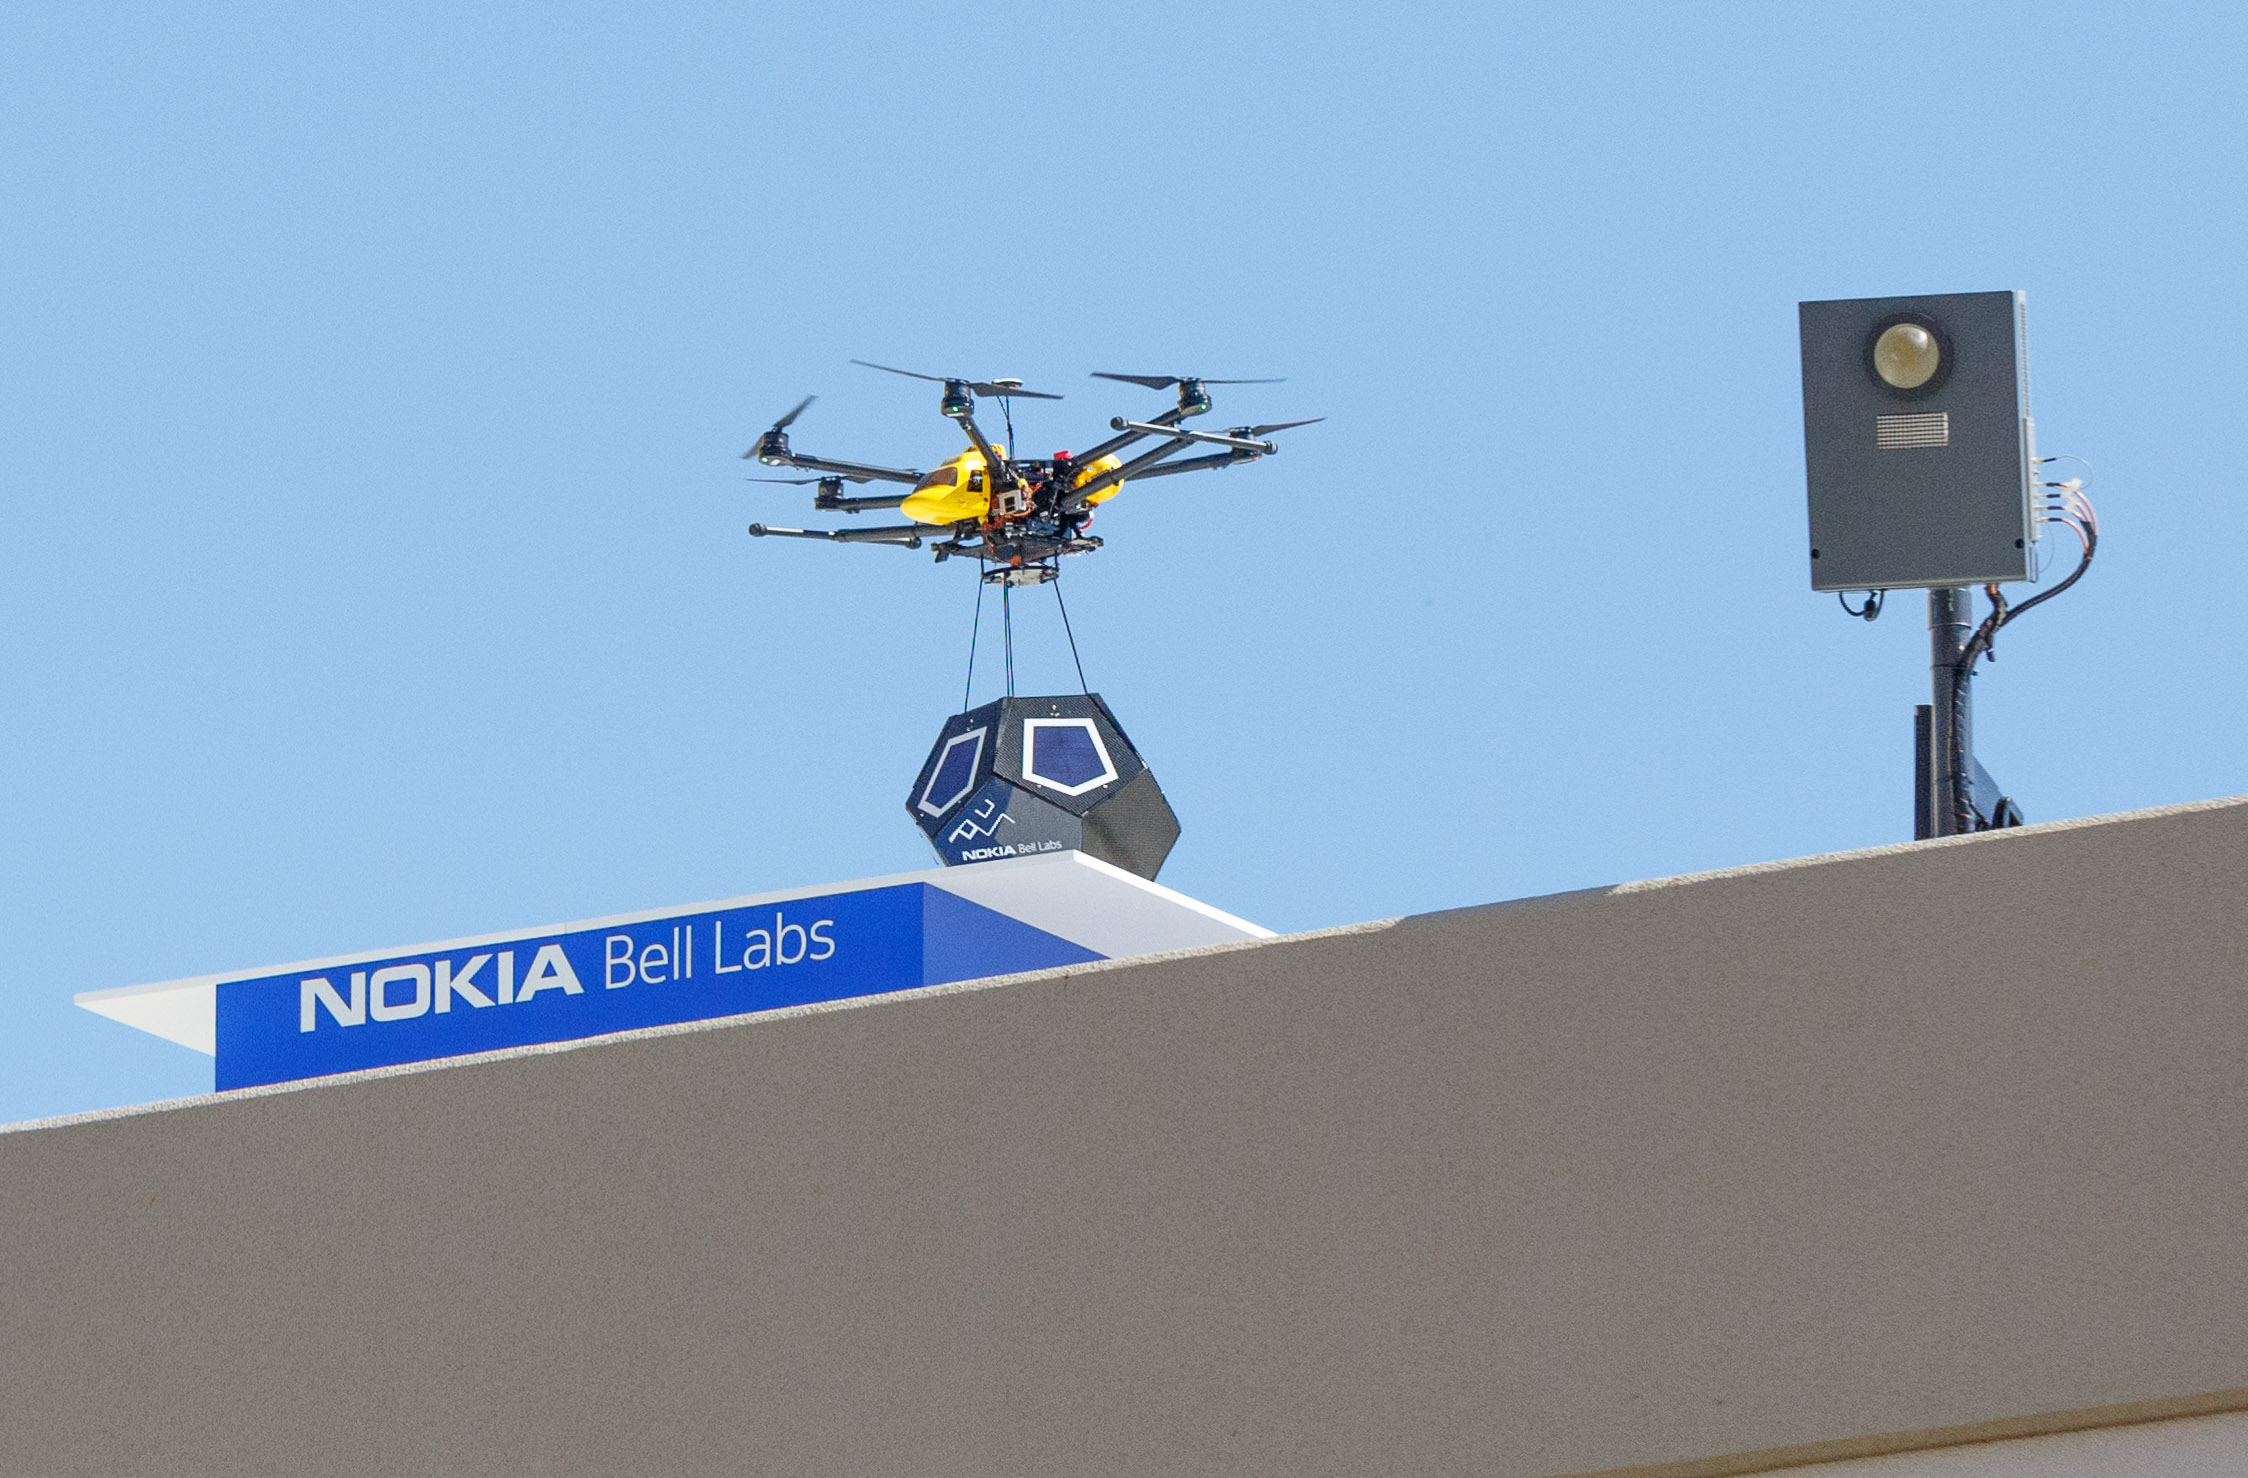 A drone lands portableA drone lands a portable, solar-powered, short-range high-speed network unit called a Future Cell on a roof near Nokia Bell Labs in Sunnyvale, California., solar-powered, short-range high-speed network unit called a Future Cell on a roof near Nokia Bell Labs in Sunnyvale, California.